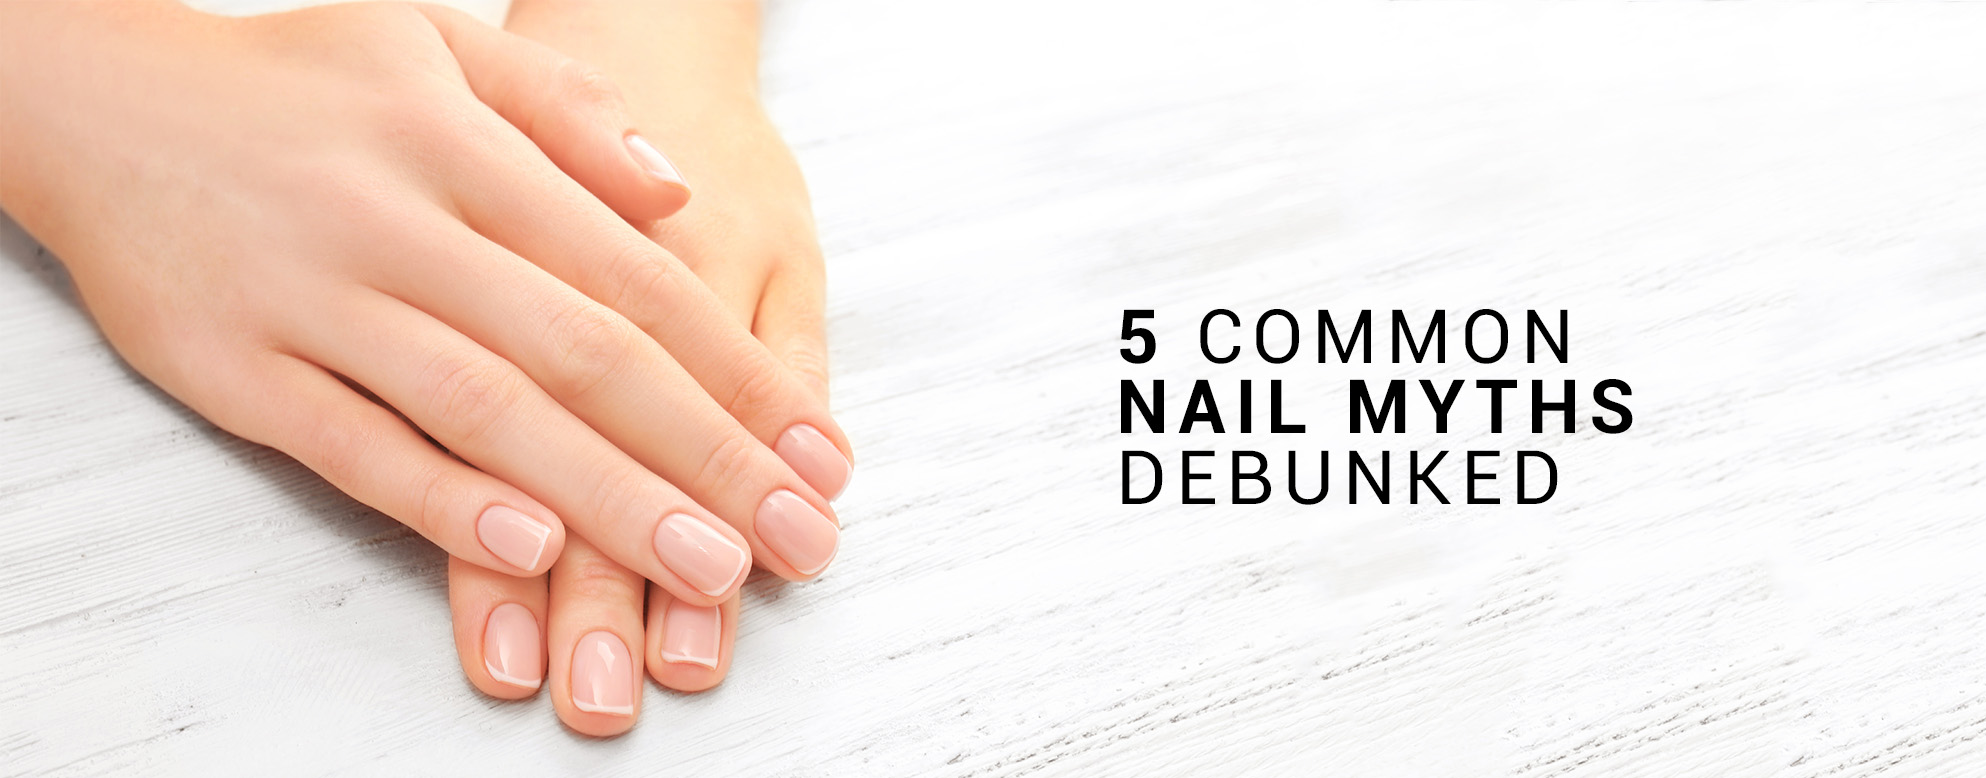 How to strengthen the nails with gelatin 35